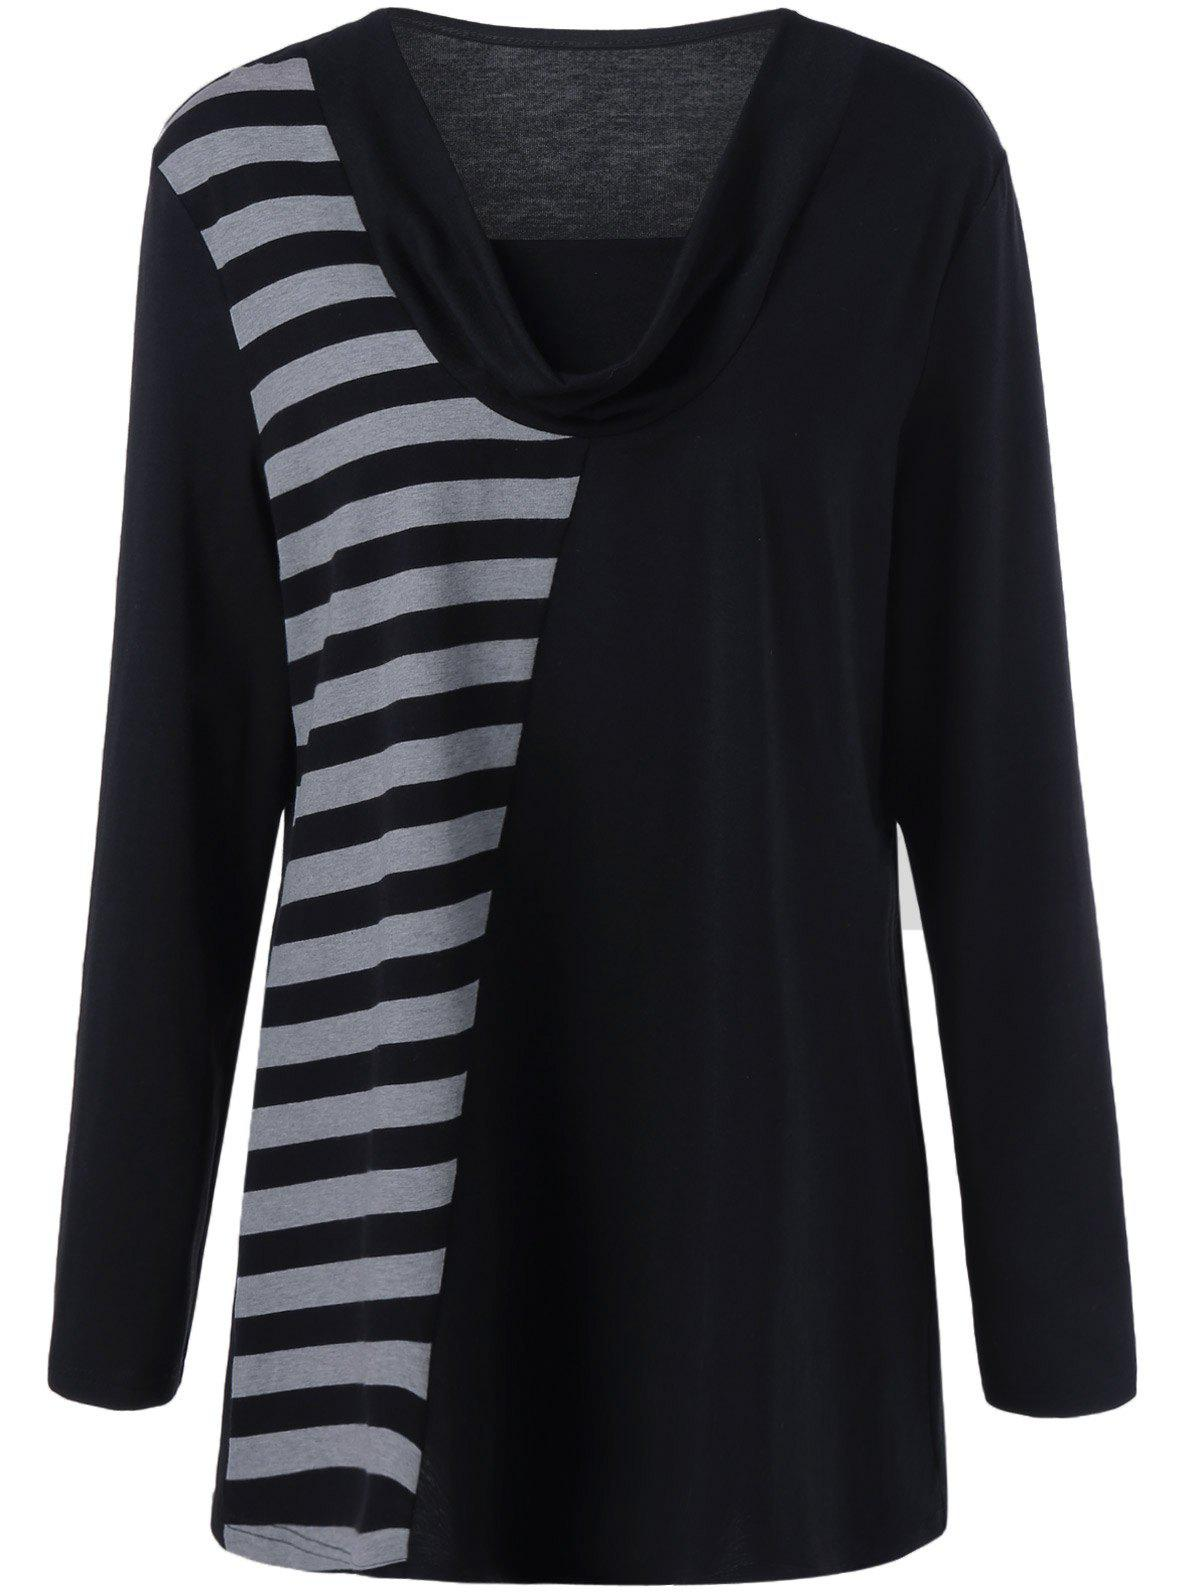 Plus Size Cowl Neck Striped Trim Tee - BLACK/GREY XL